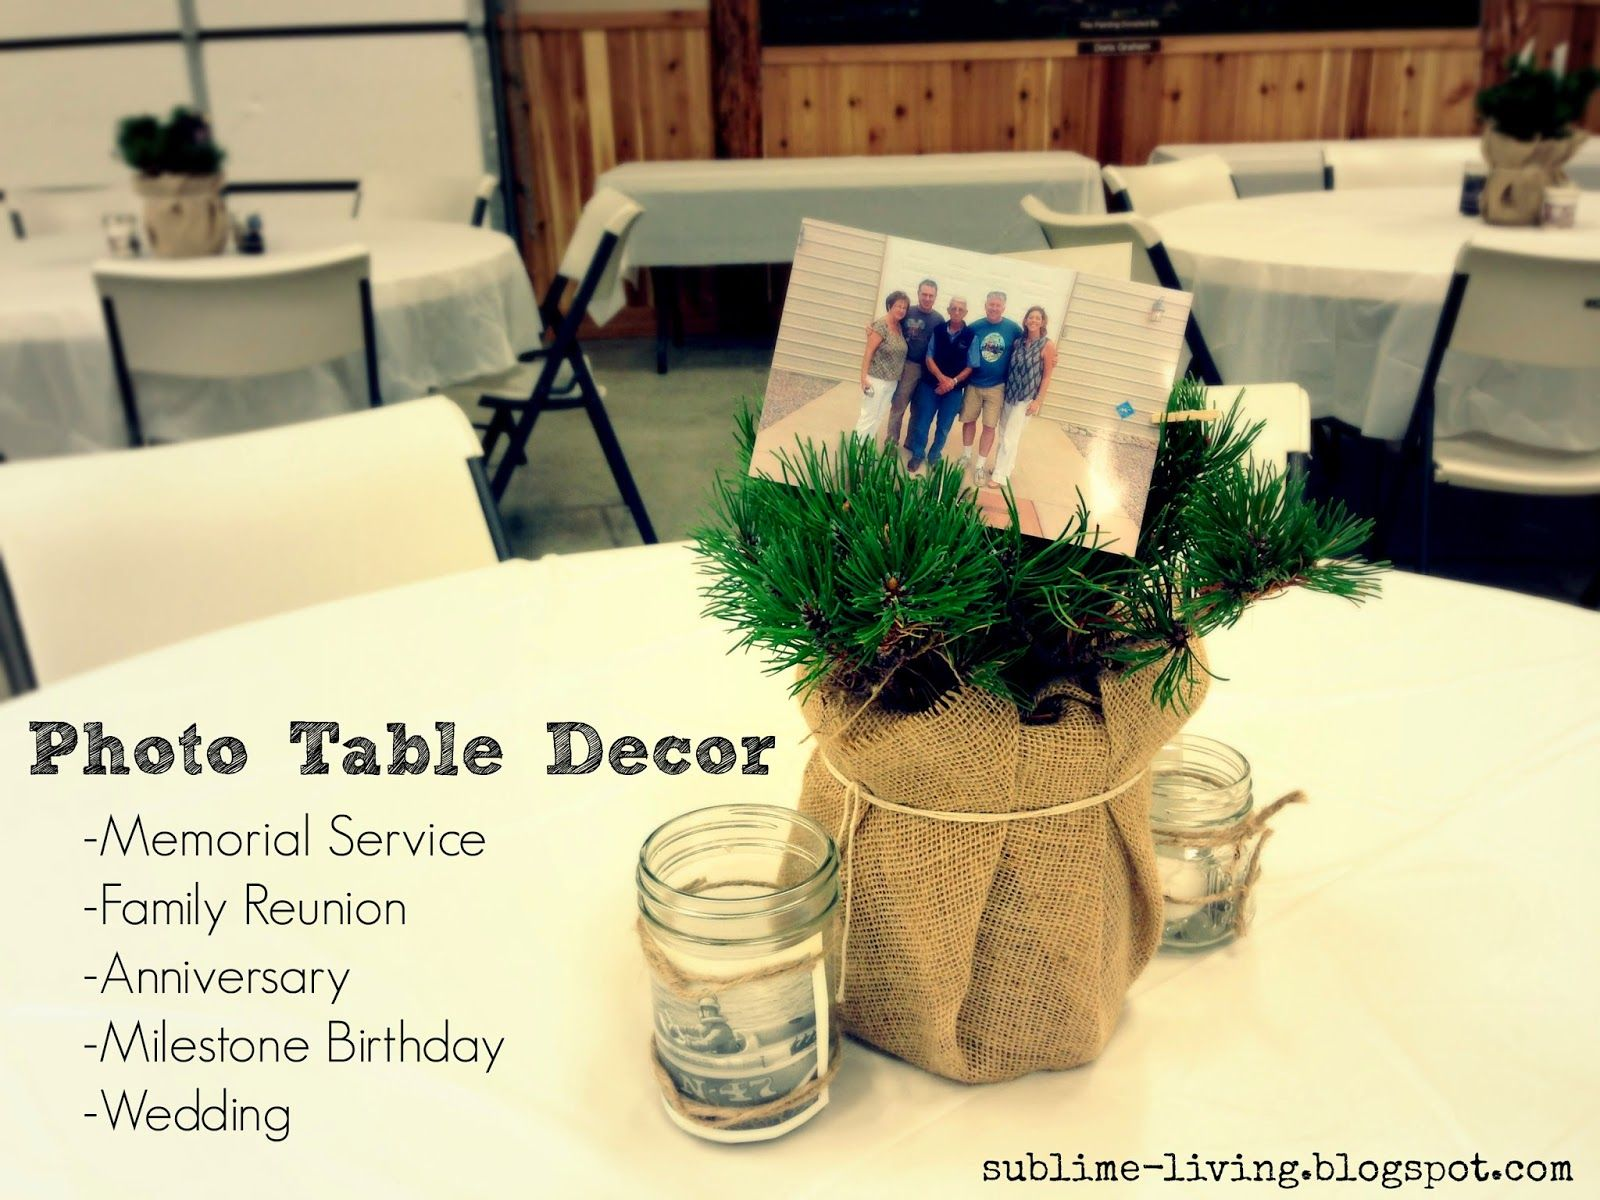 Sublimeliving A Time To Grieve Simple Memorial Service Ideas Funeral Reception Funeral Party Funeral Centerpieces